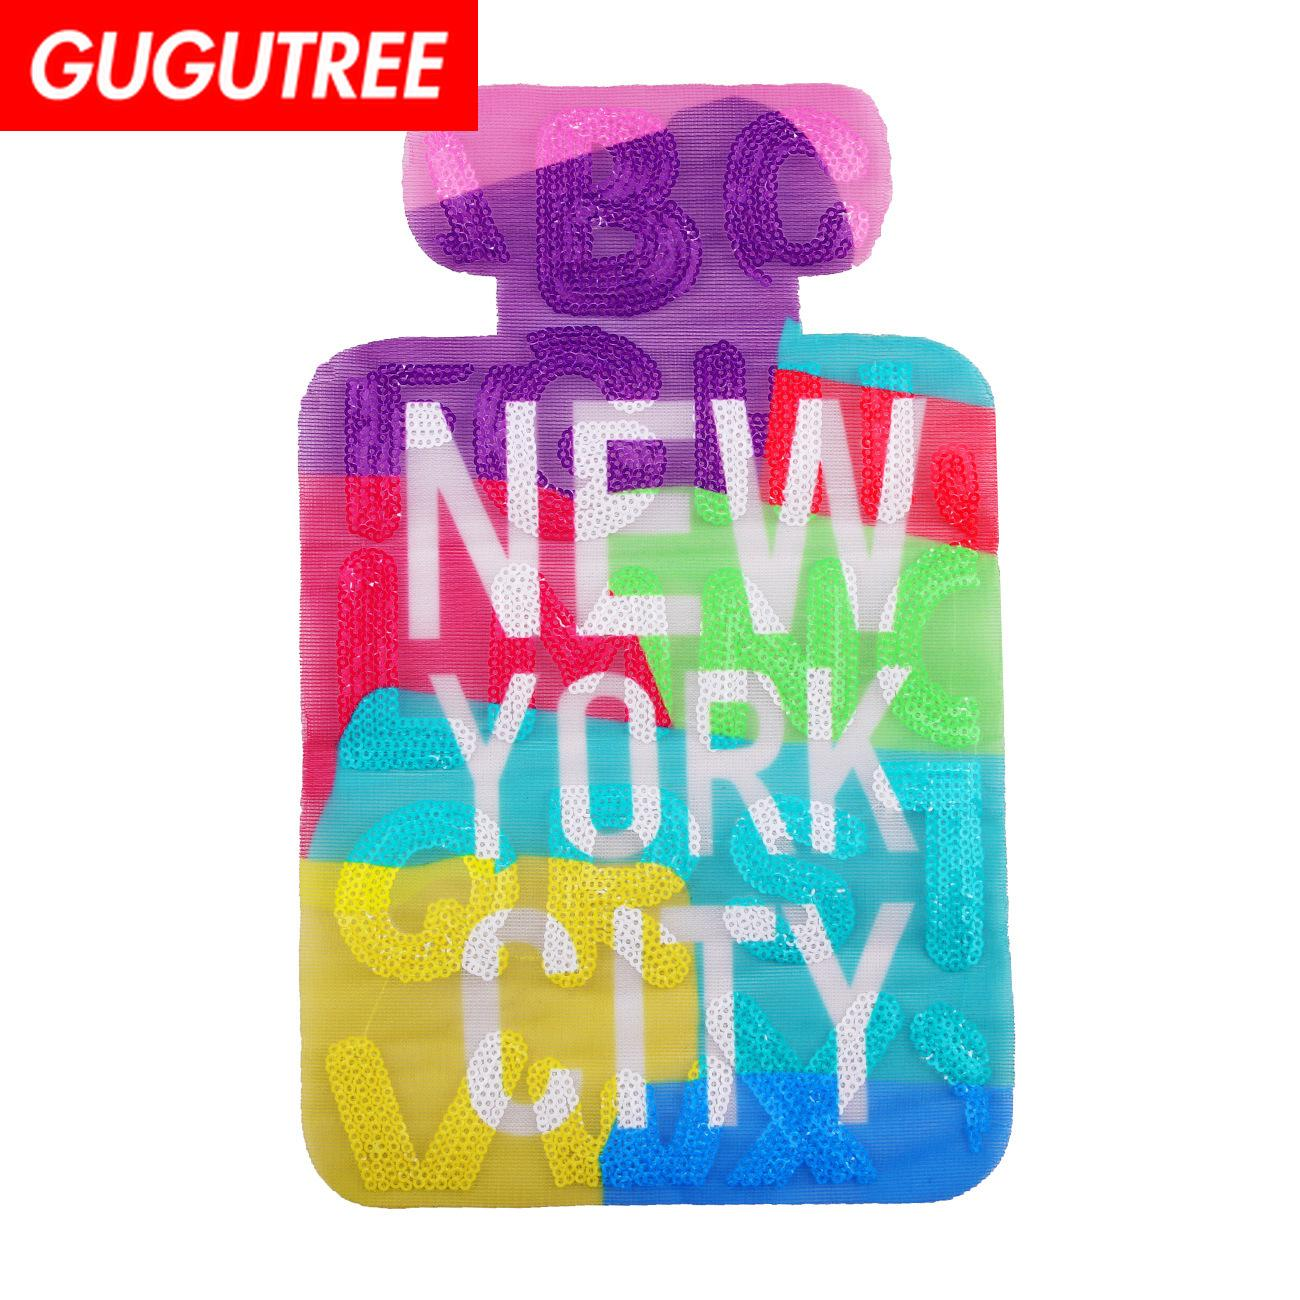 GUGUTREE Sequins embroidery big bottle patch cartoon patches badges applique patches for clothing JW-6